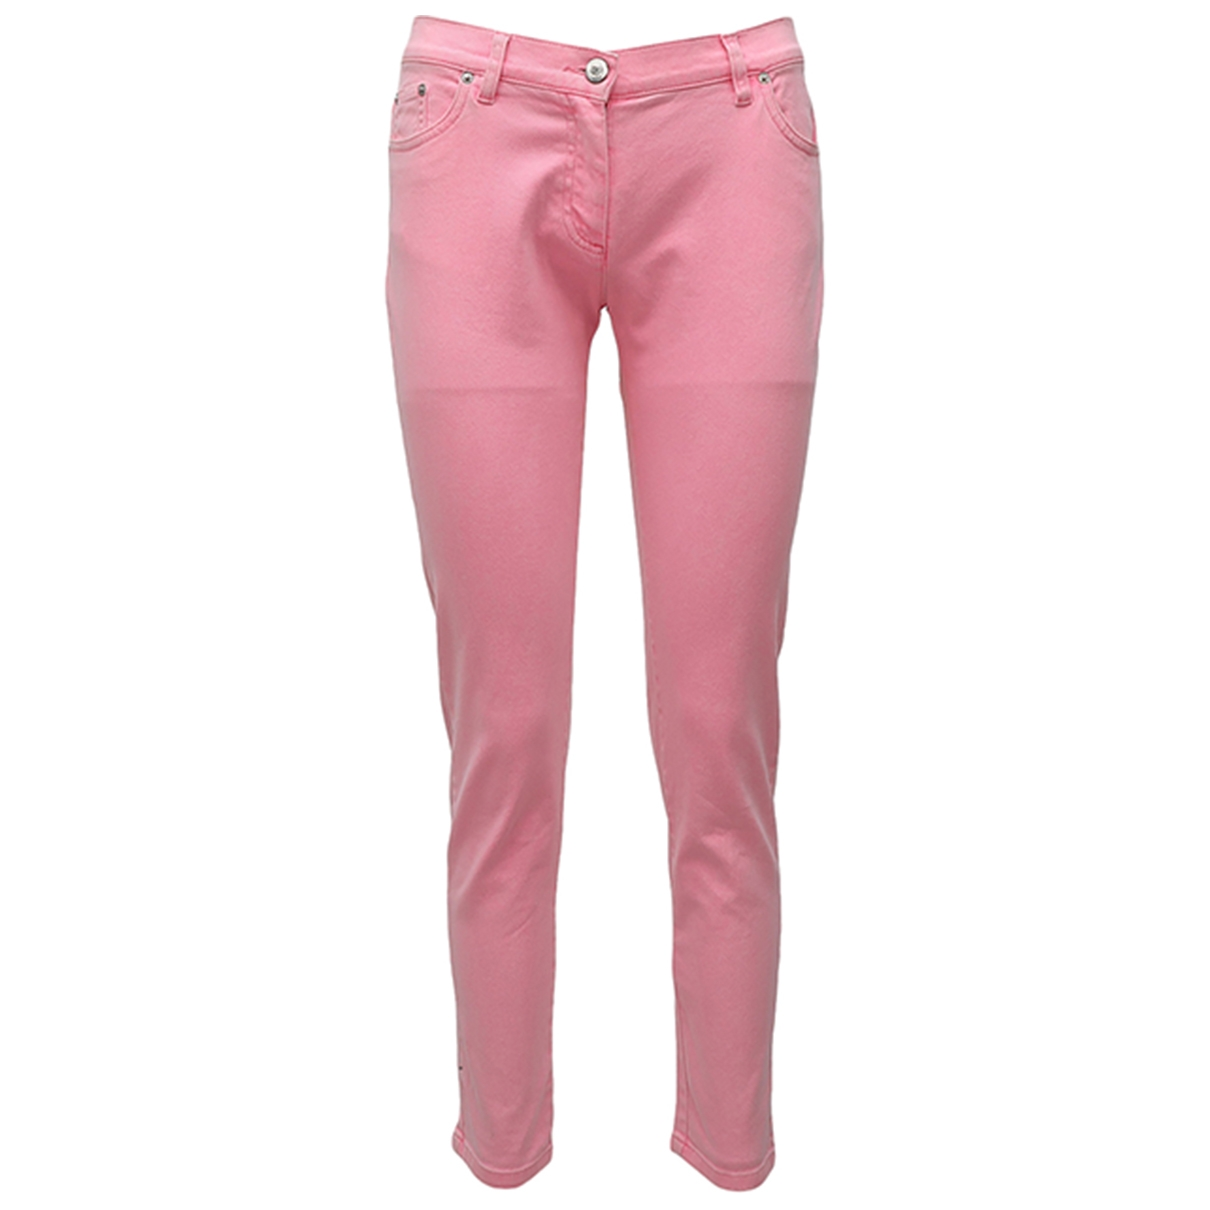 Kenzo \N Pink Cotton - elasthane Jeans for Women 36 FR